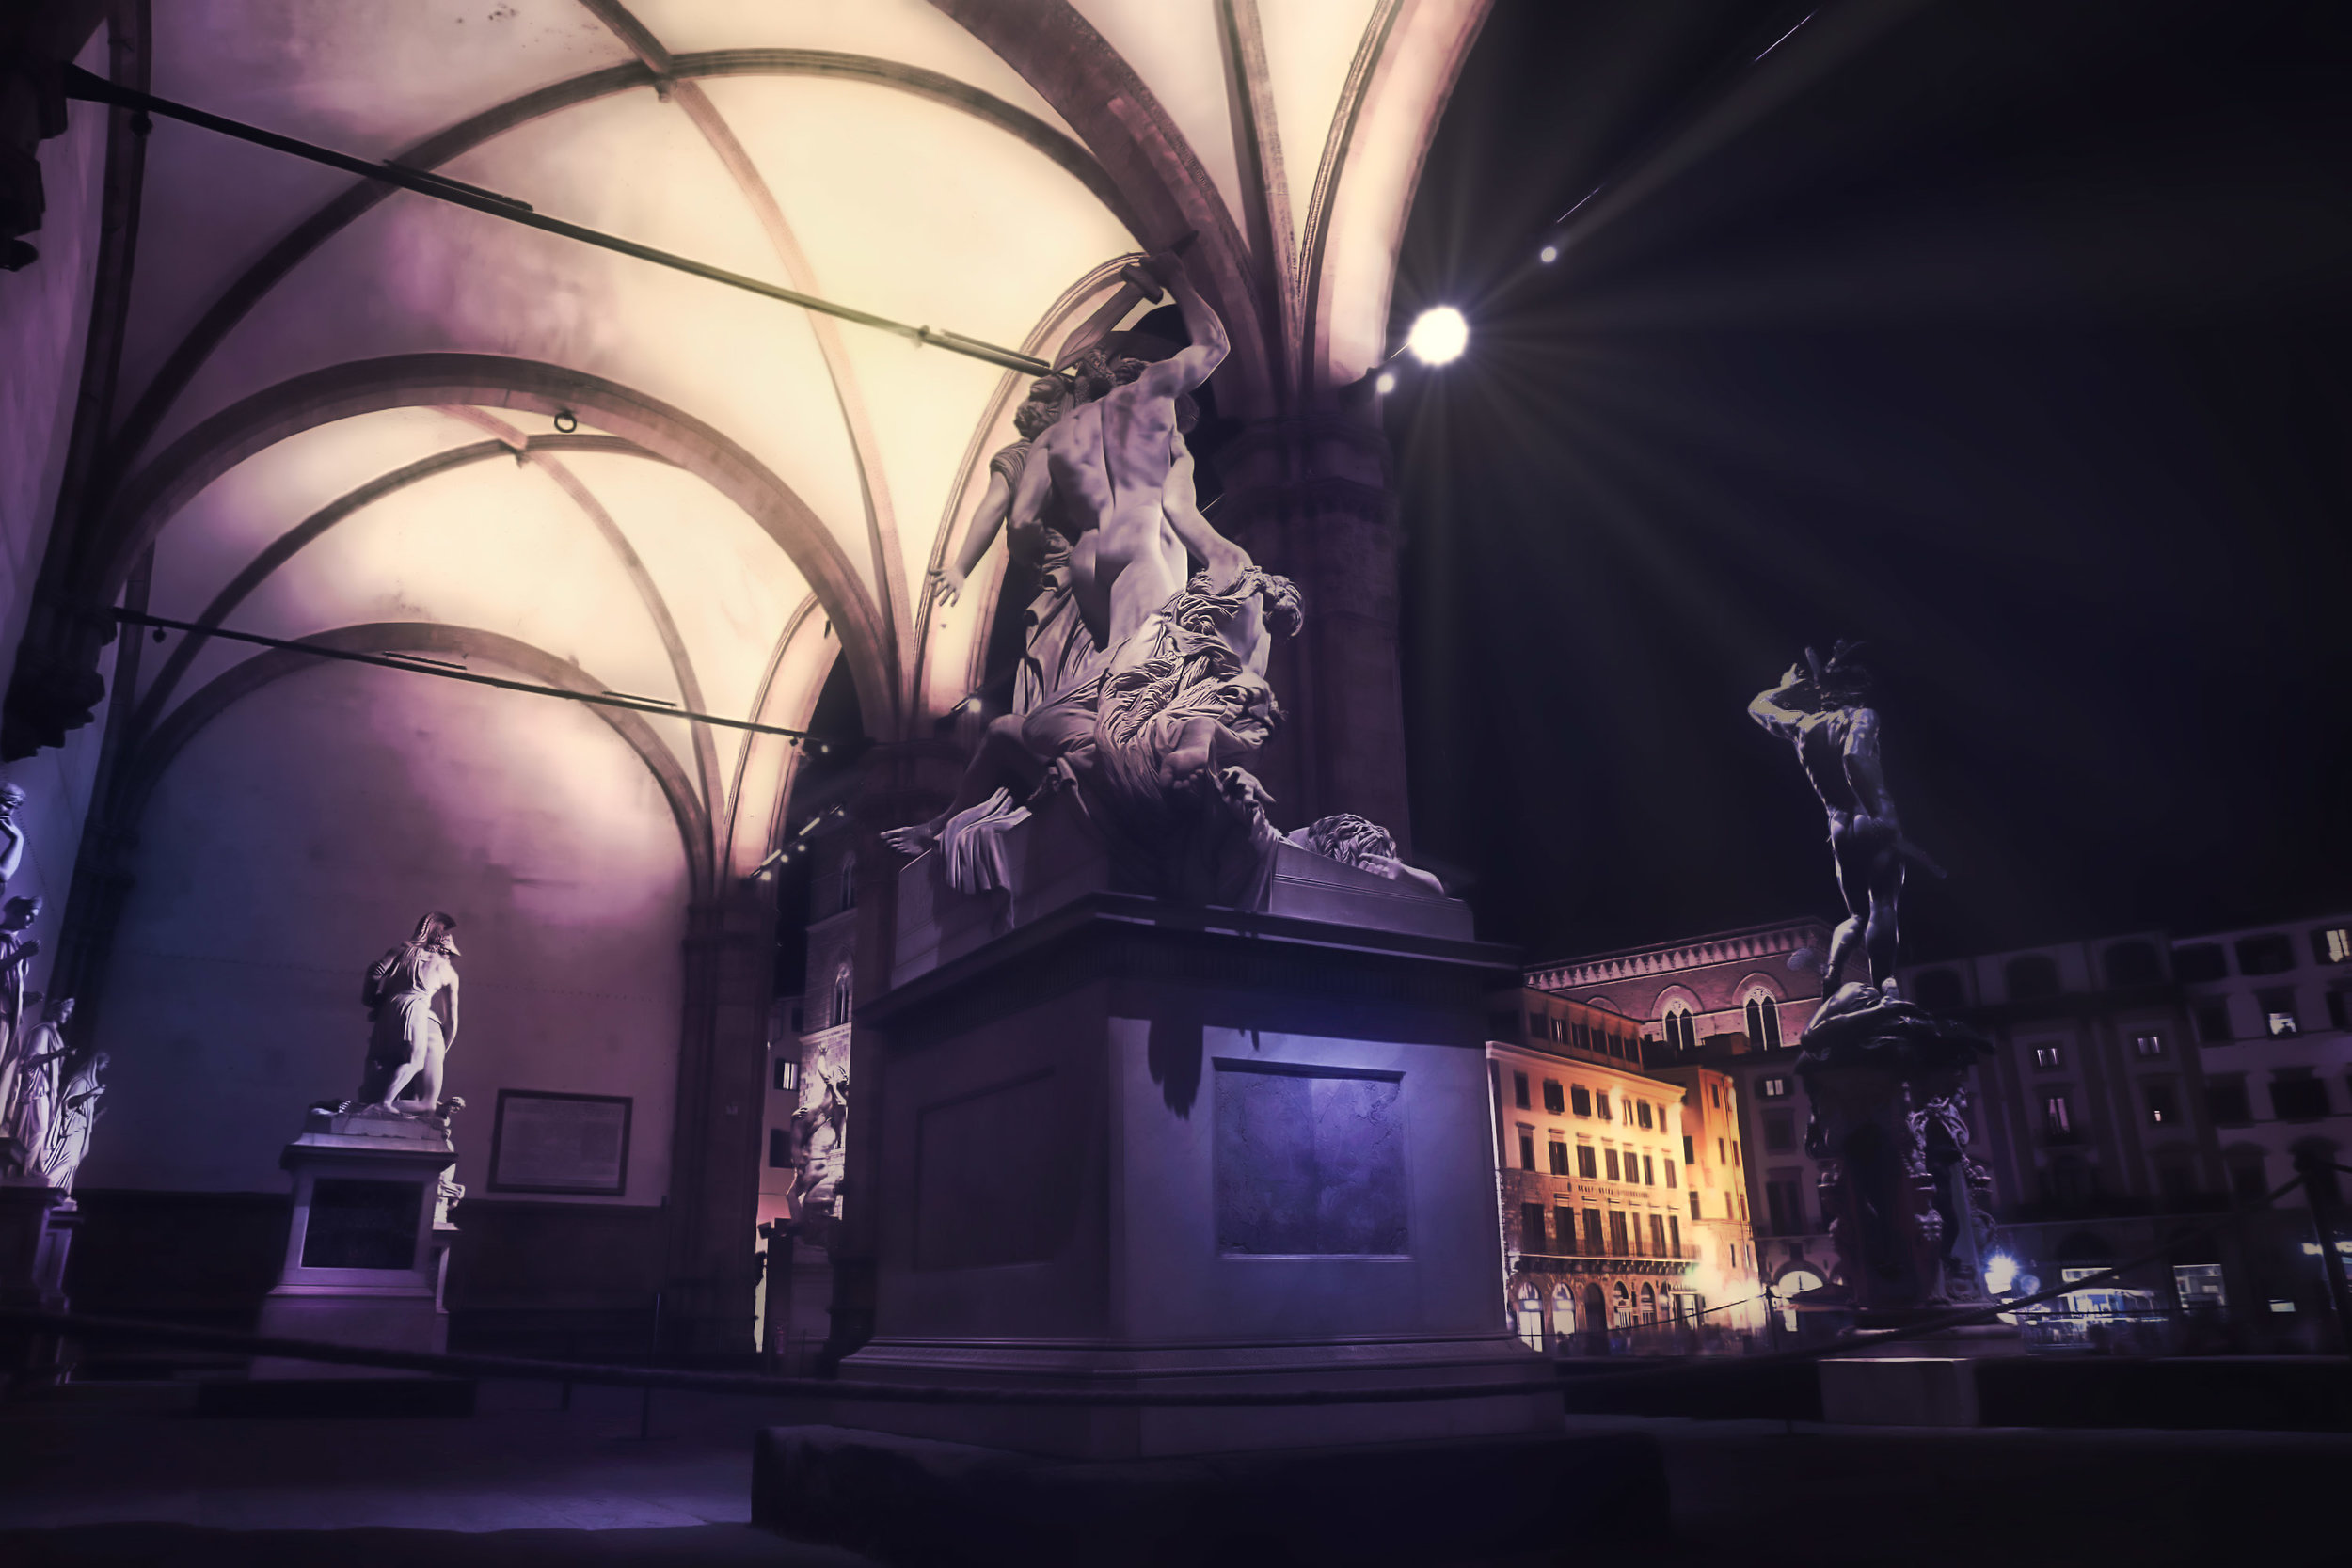 """LOGGIA DEI LANZI""  ALL IMAGES ARE © ANDREA BIGIARINI - All rights reserved"